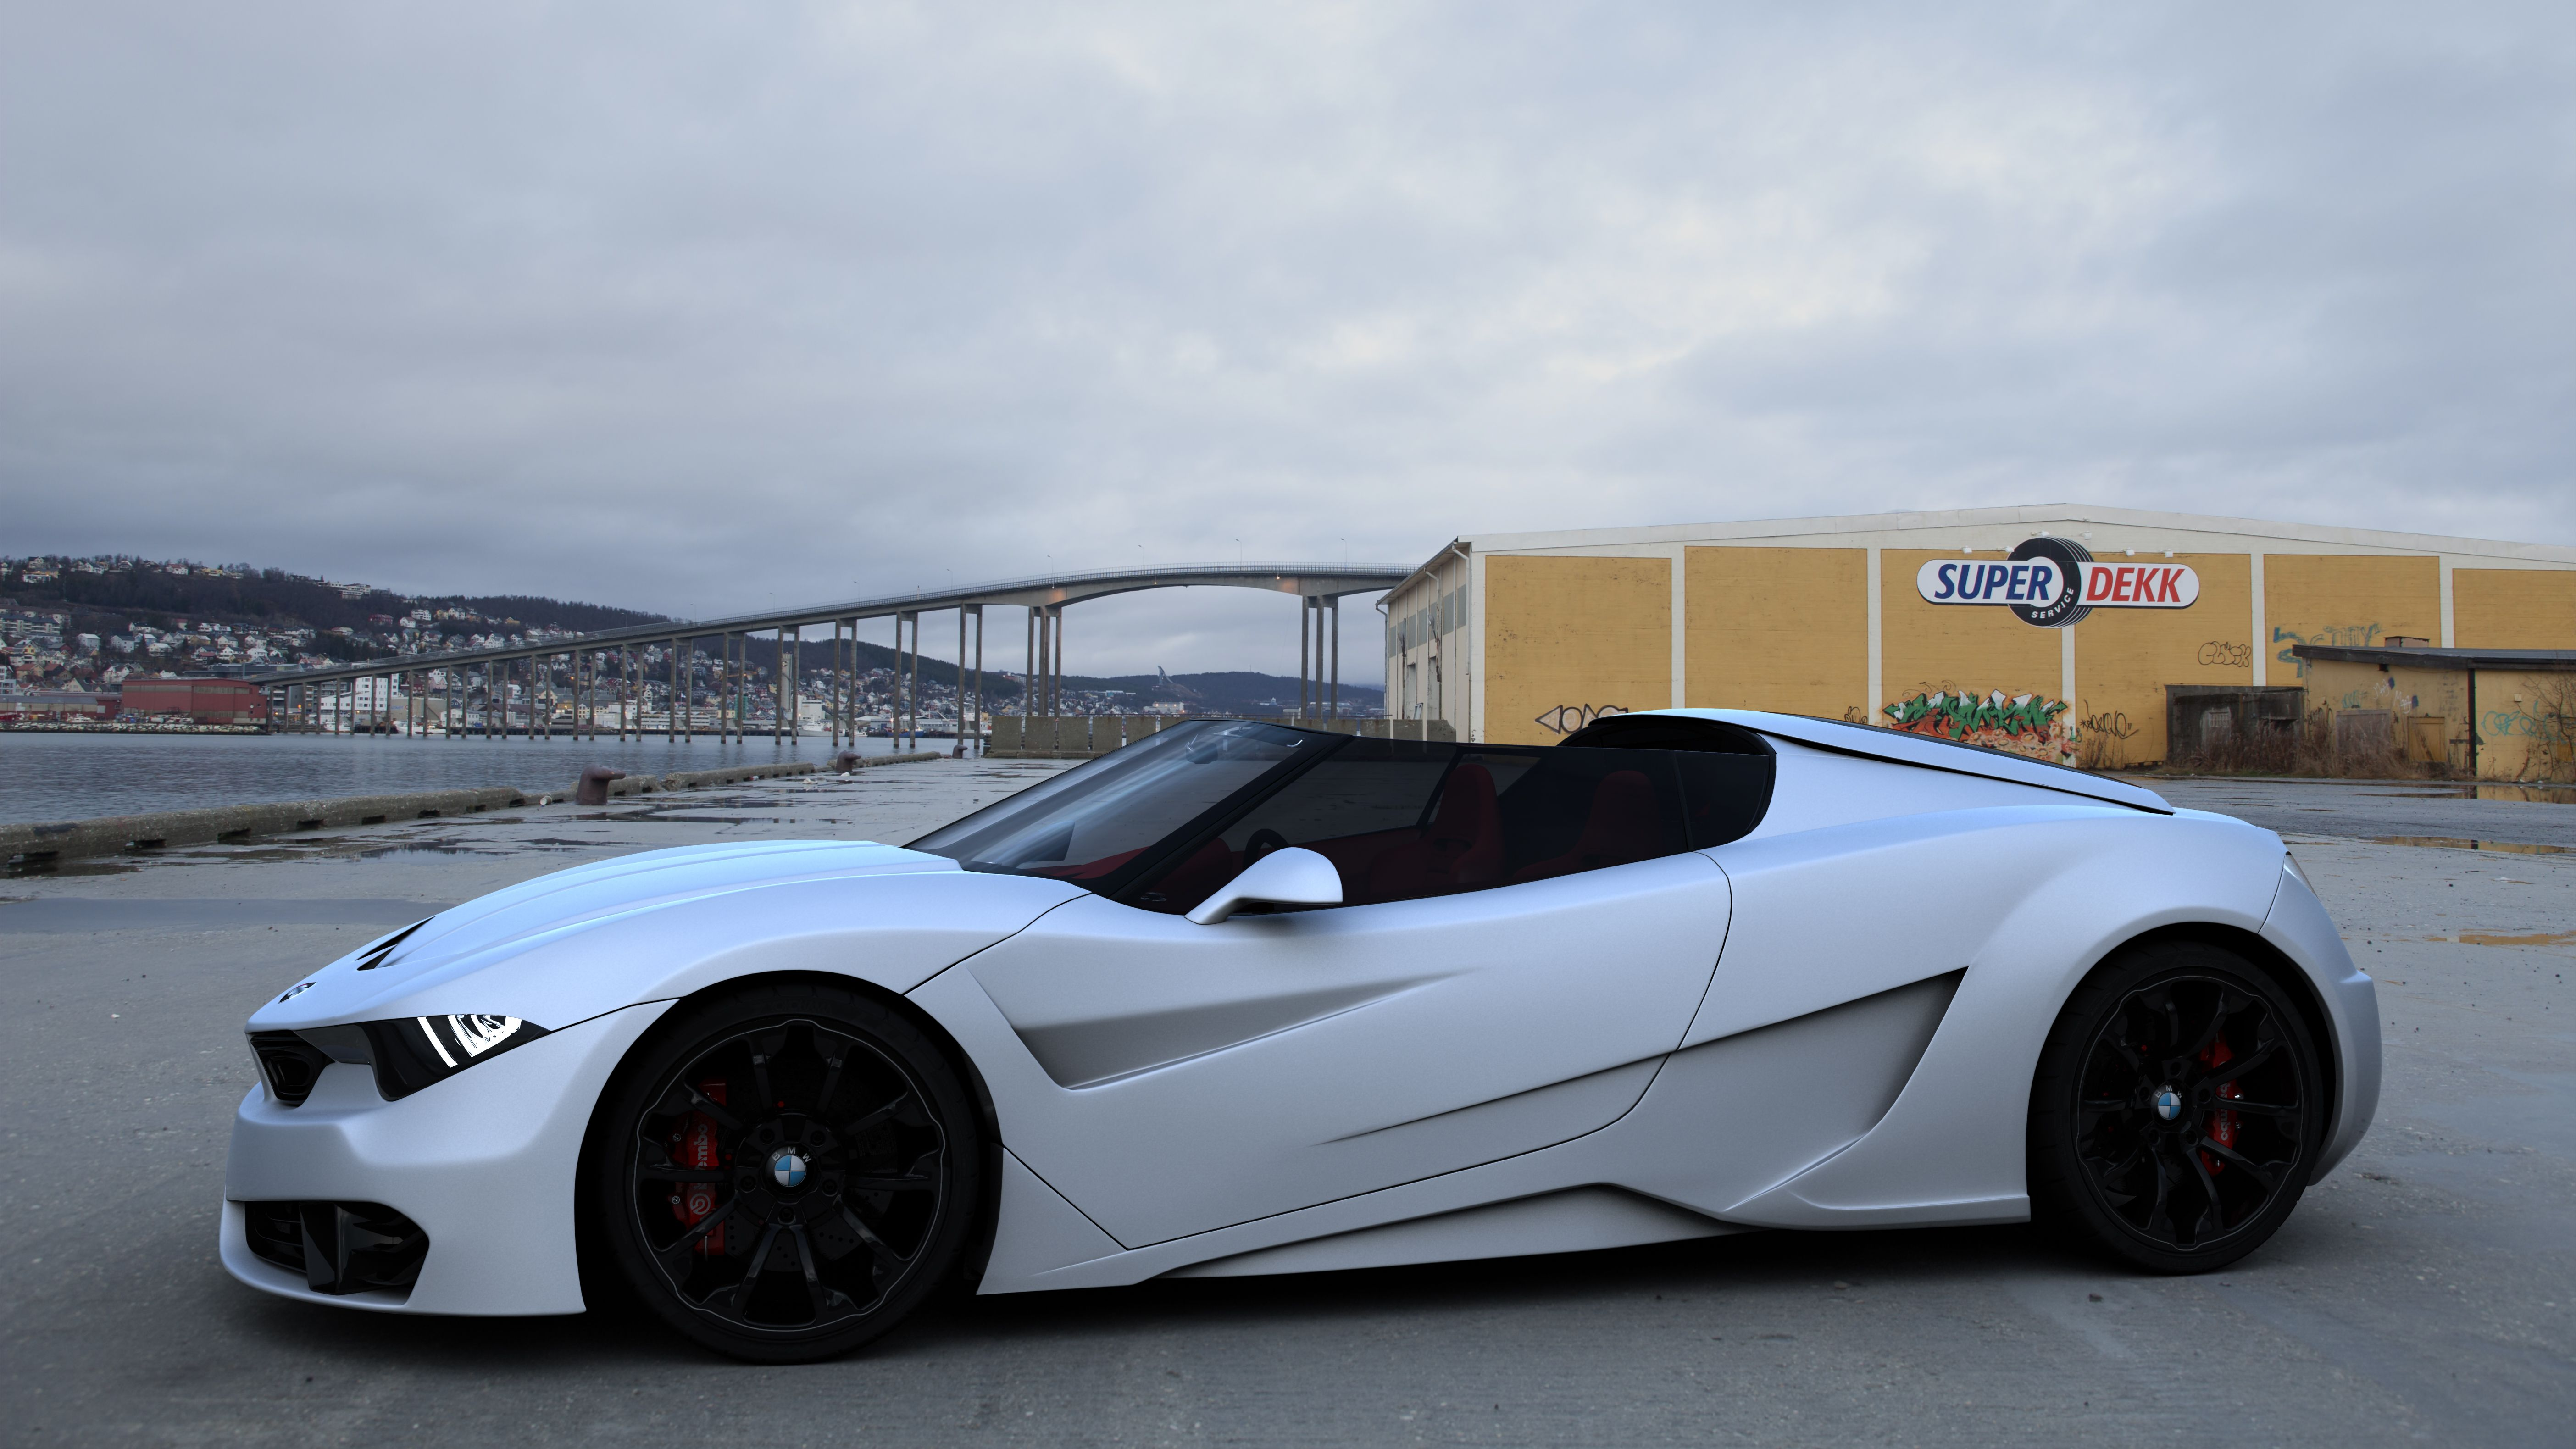 bmw m9 google search vehicles pinterest bmw cars and futuristic vehicles. Black Bedroom Furniture Sets. Home Design Ideas